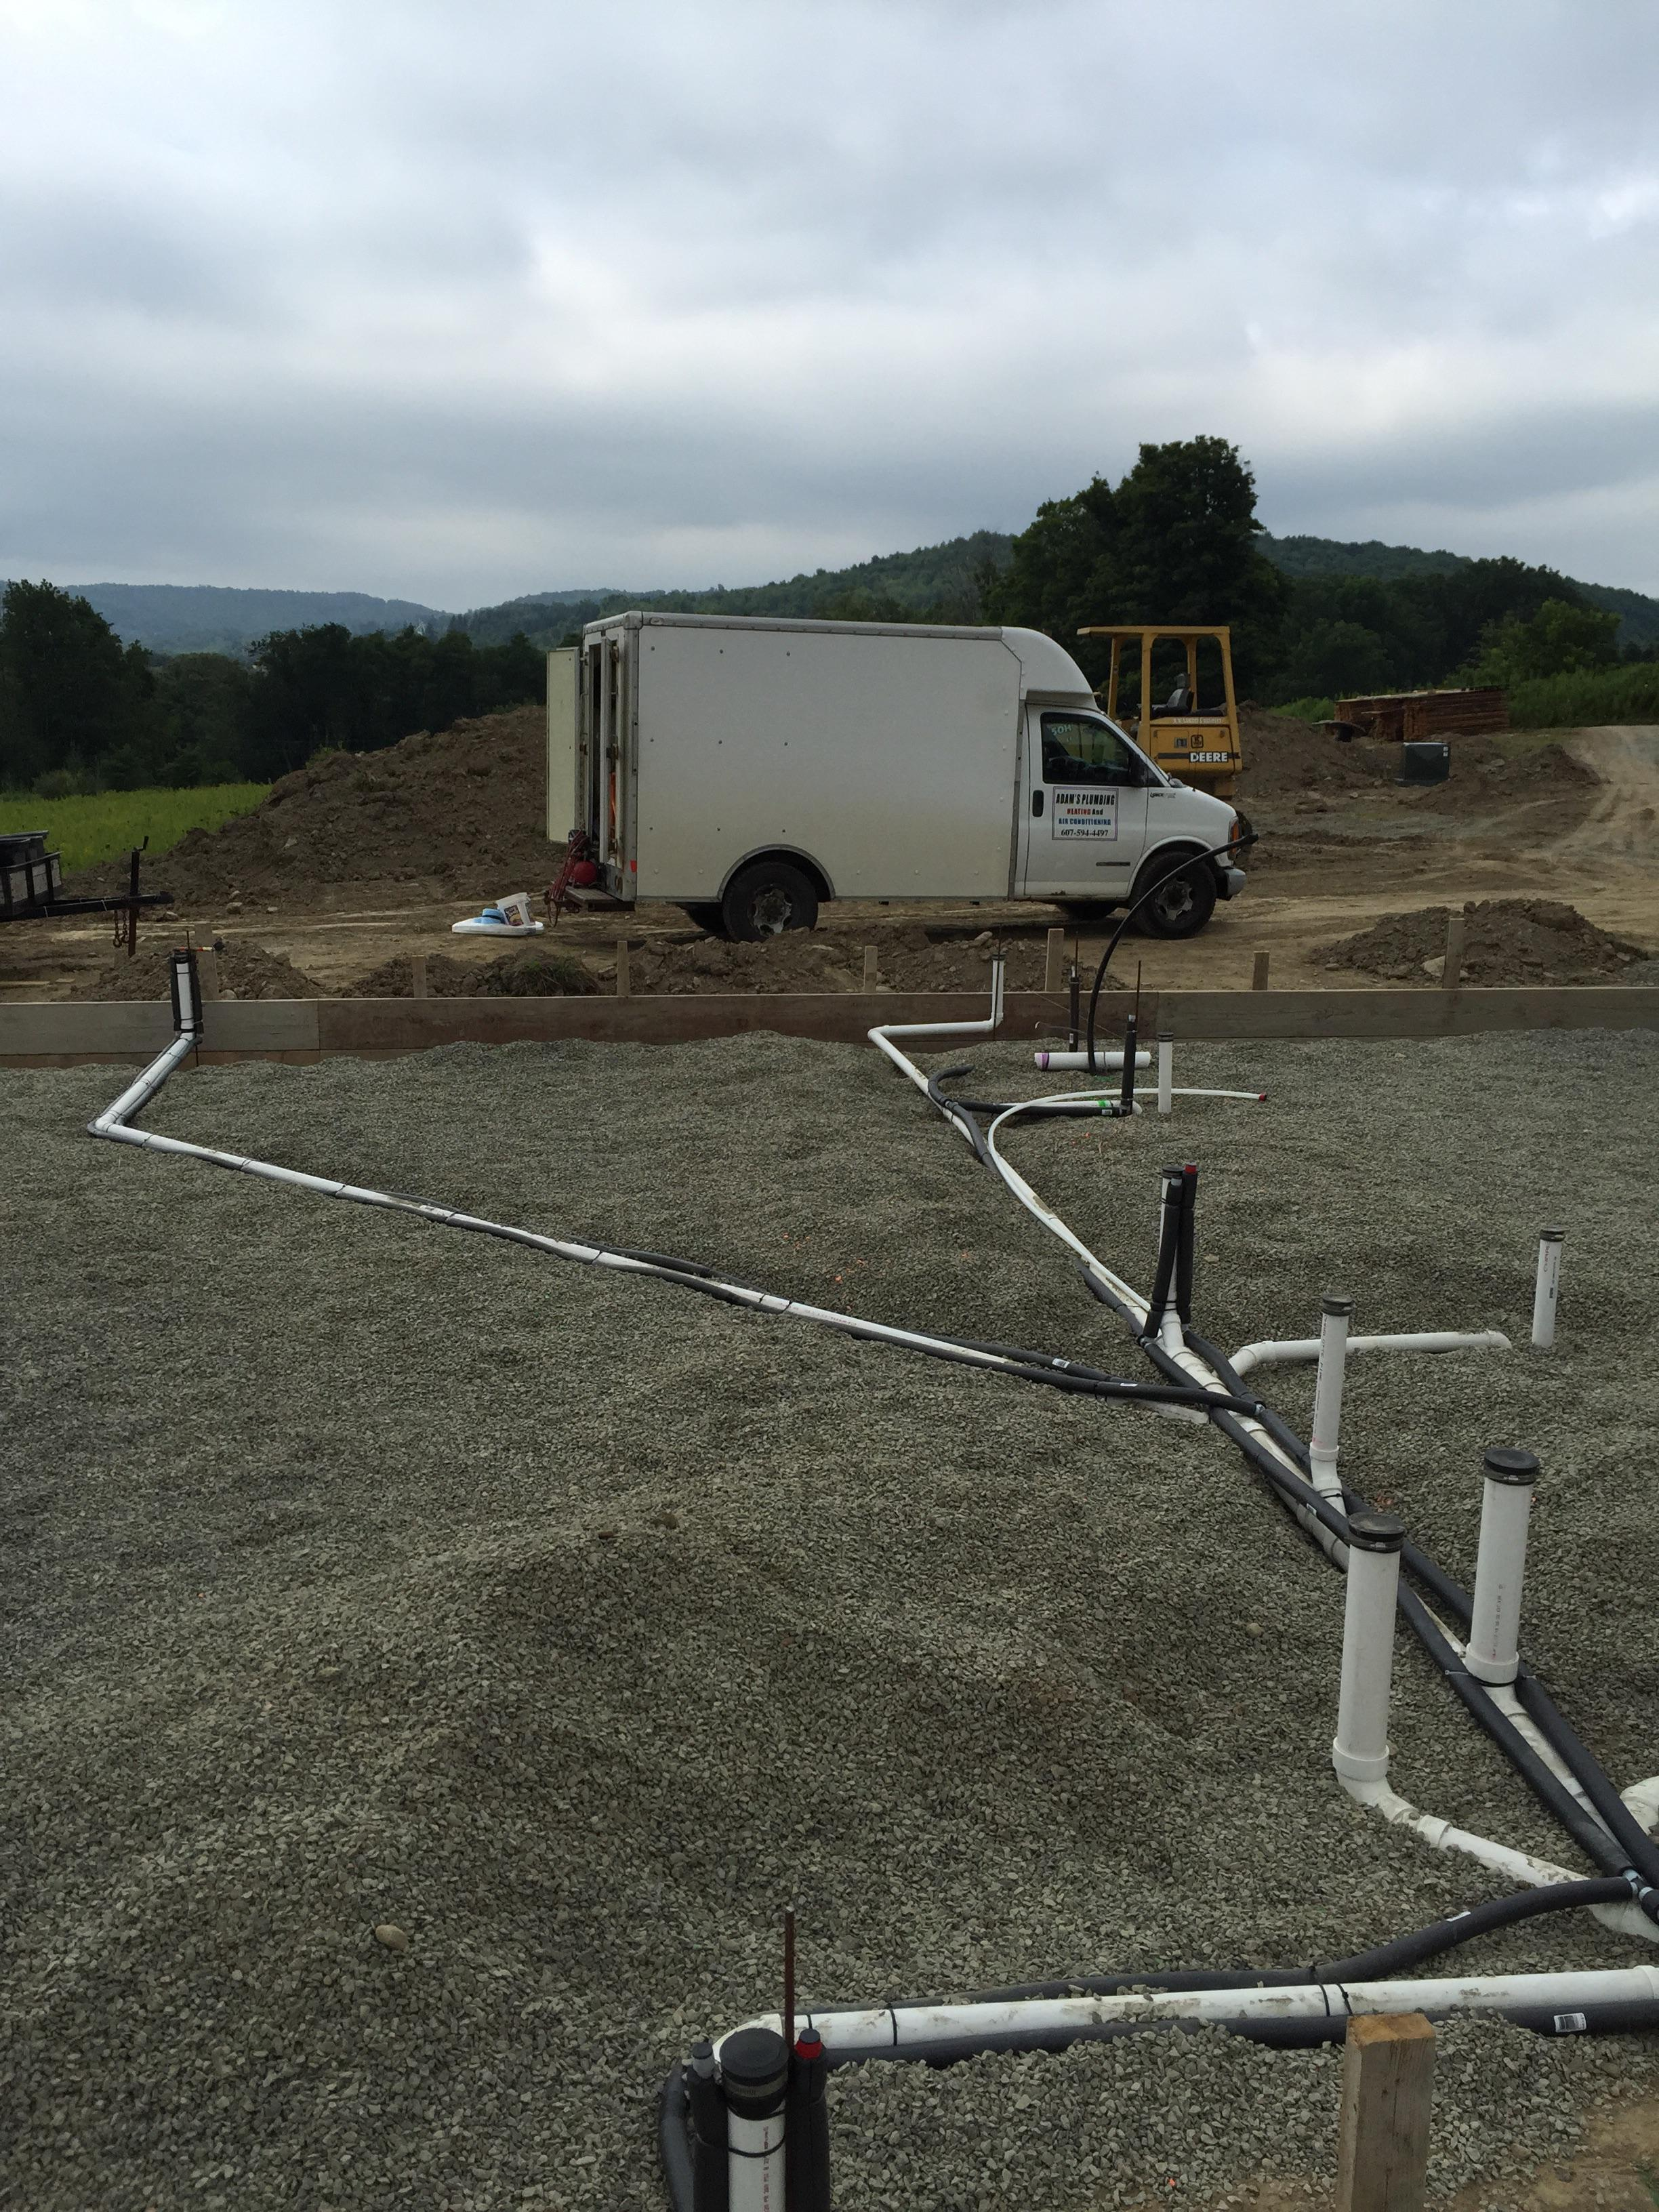 PVC underground plumbing roughin for new home in Newfield NY